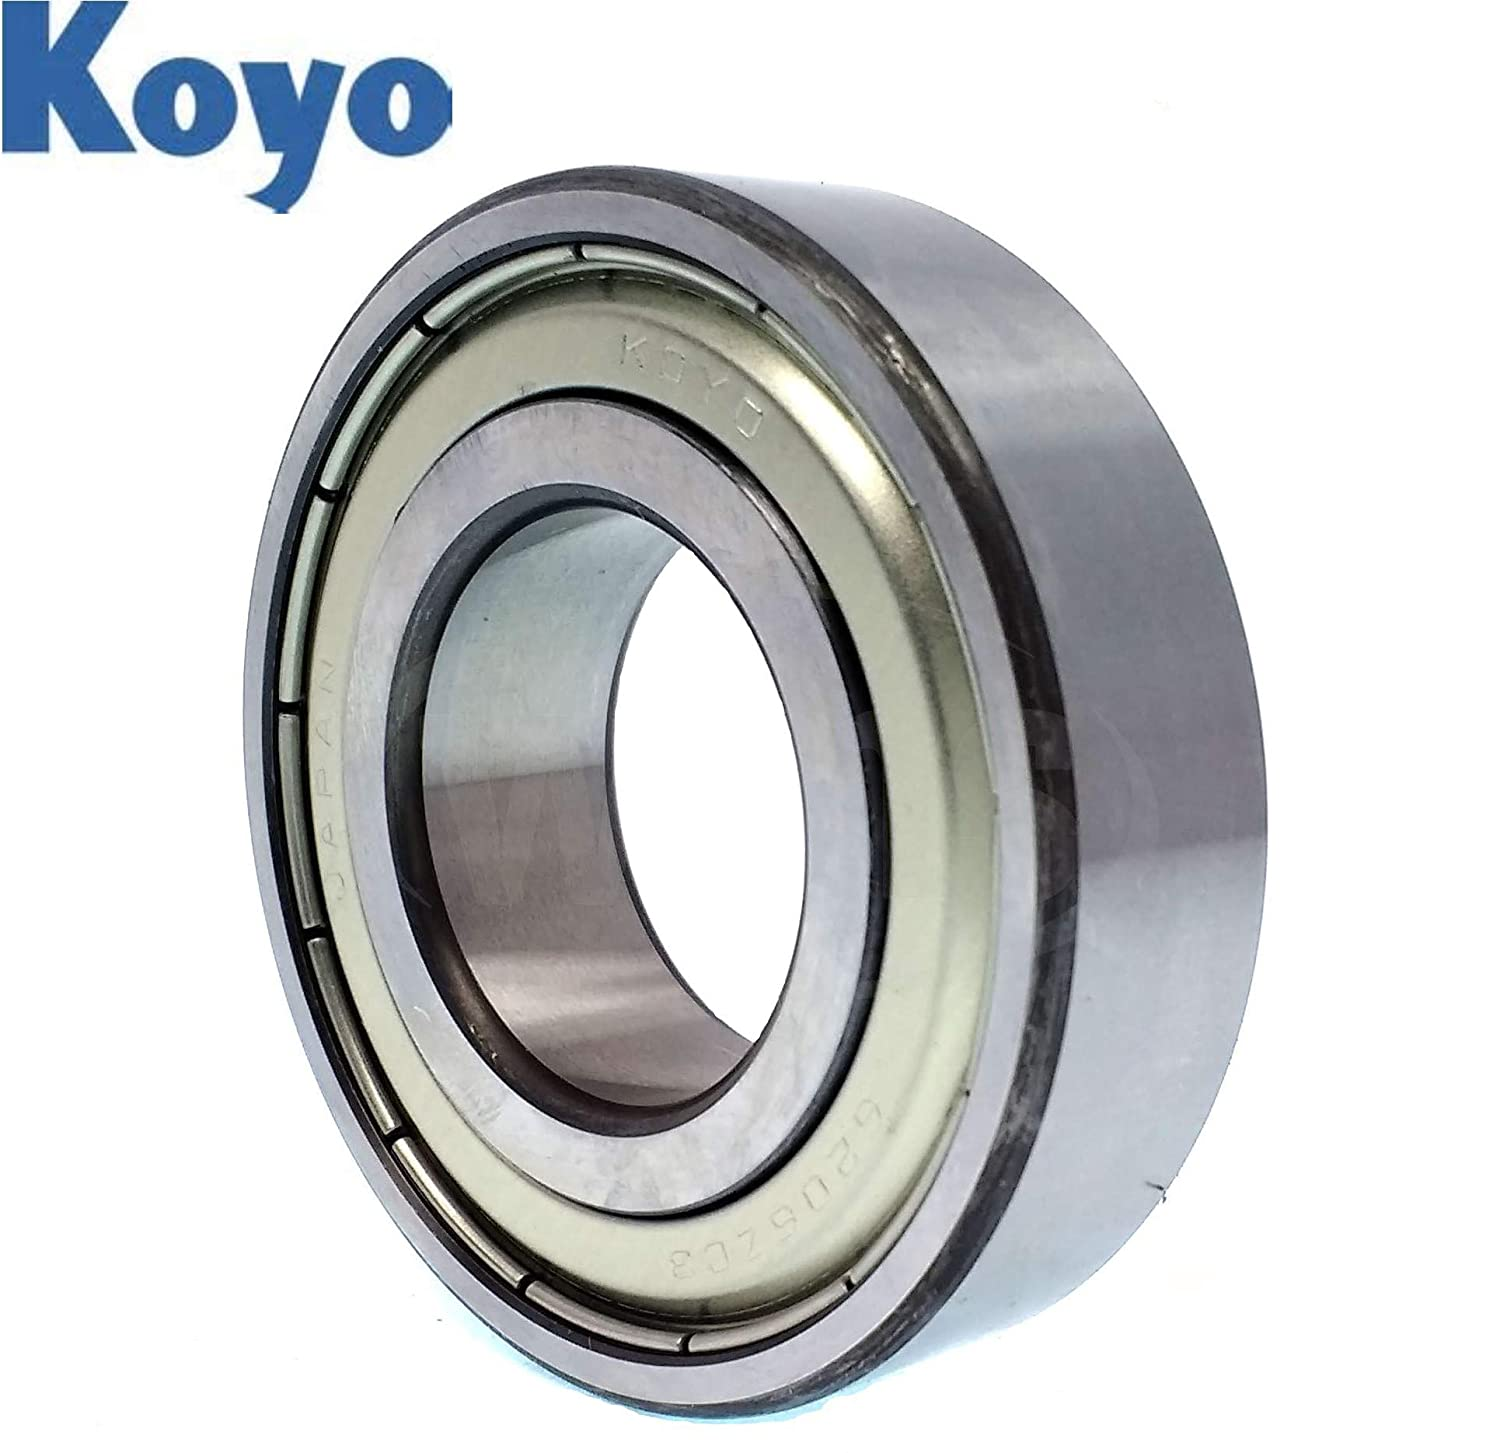 66 Coupling Outer Diameter:40 VXB Brand Japan MJC-40-GR 5//8 inch to 5//8 inch Jaw-Type Flexible Coupling Coupling Bore 2 Diameter:5//8 inch Coupling Length